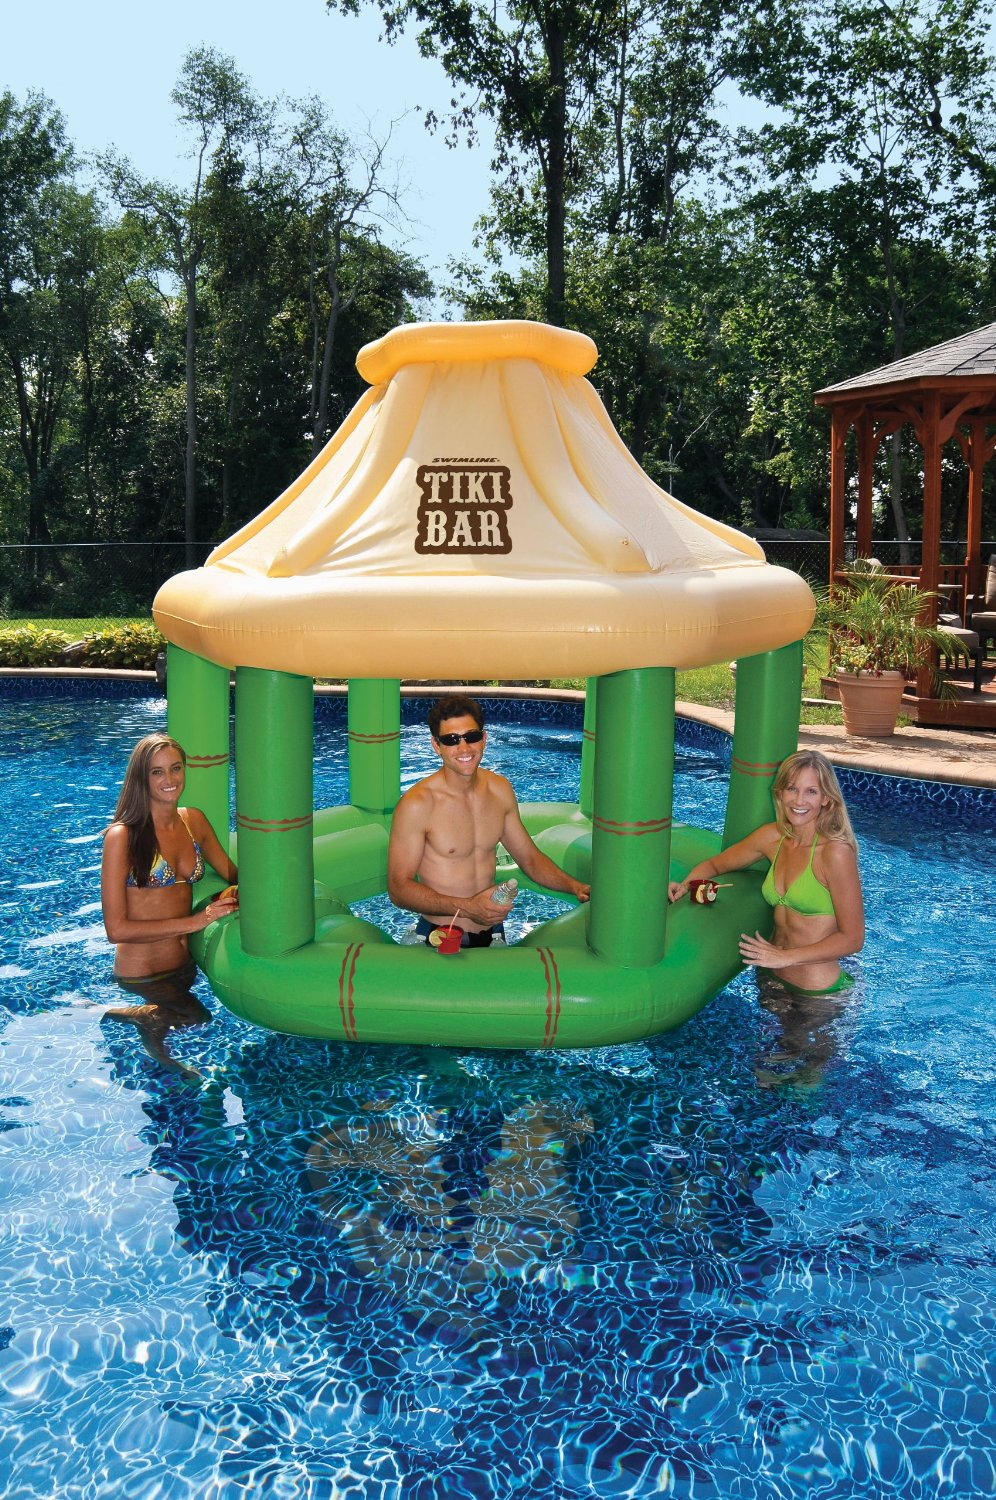 These are some amazing pool floats!